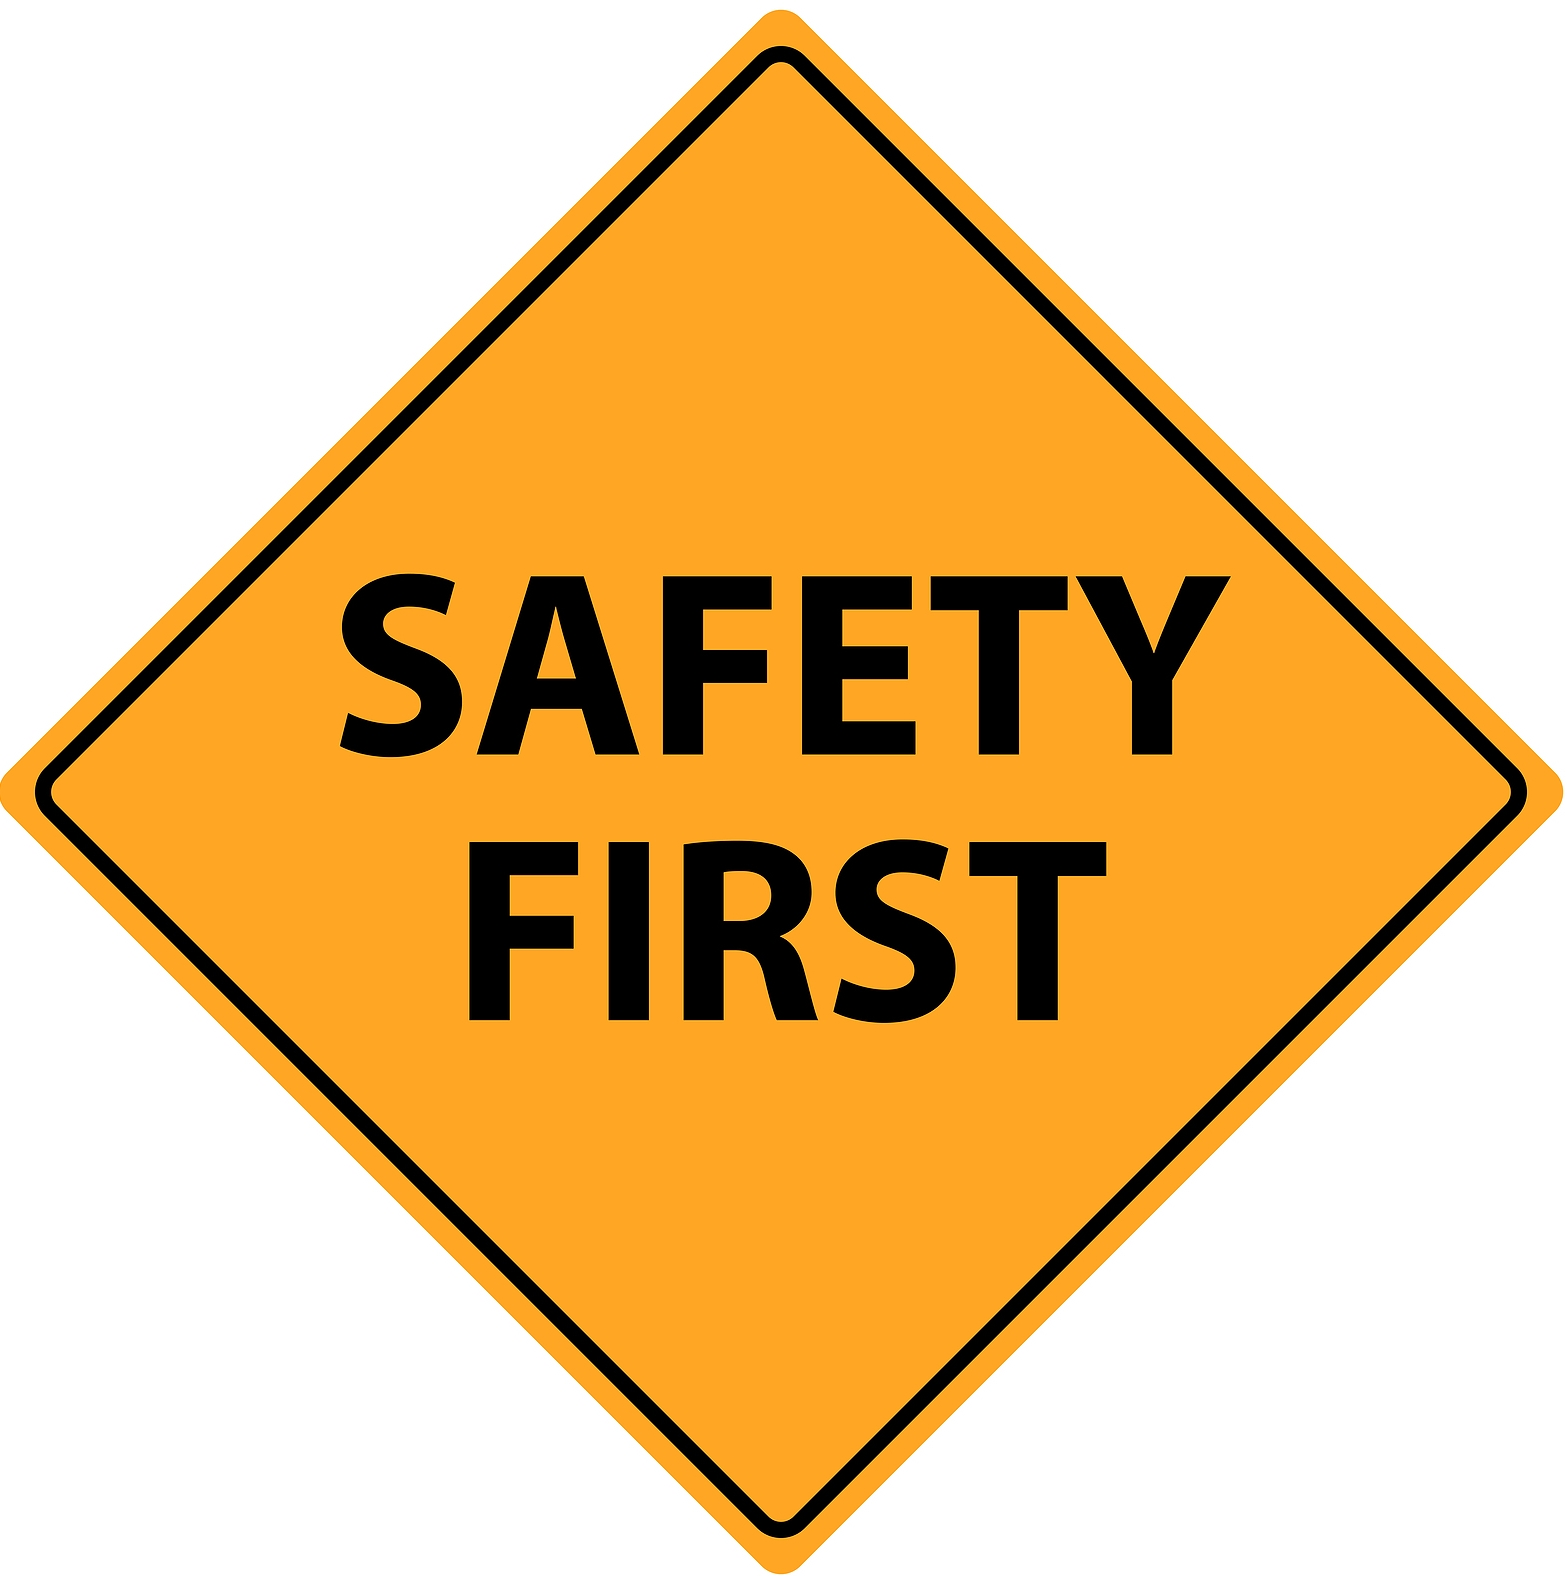 Safety-First 3.jpg